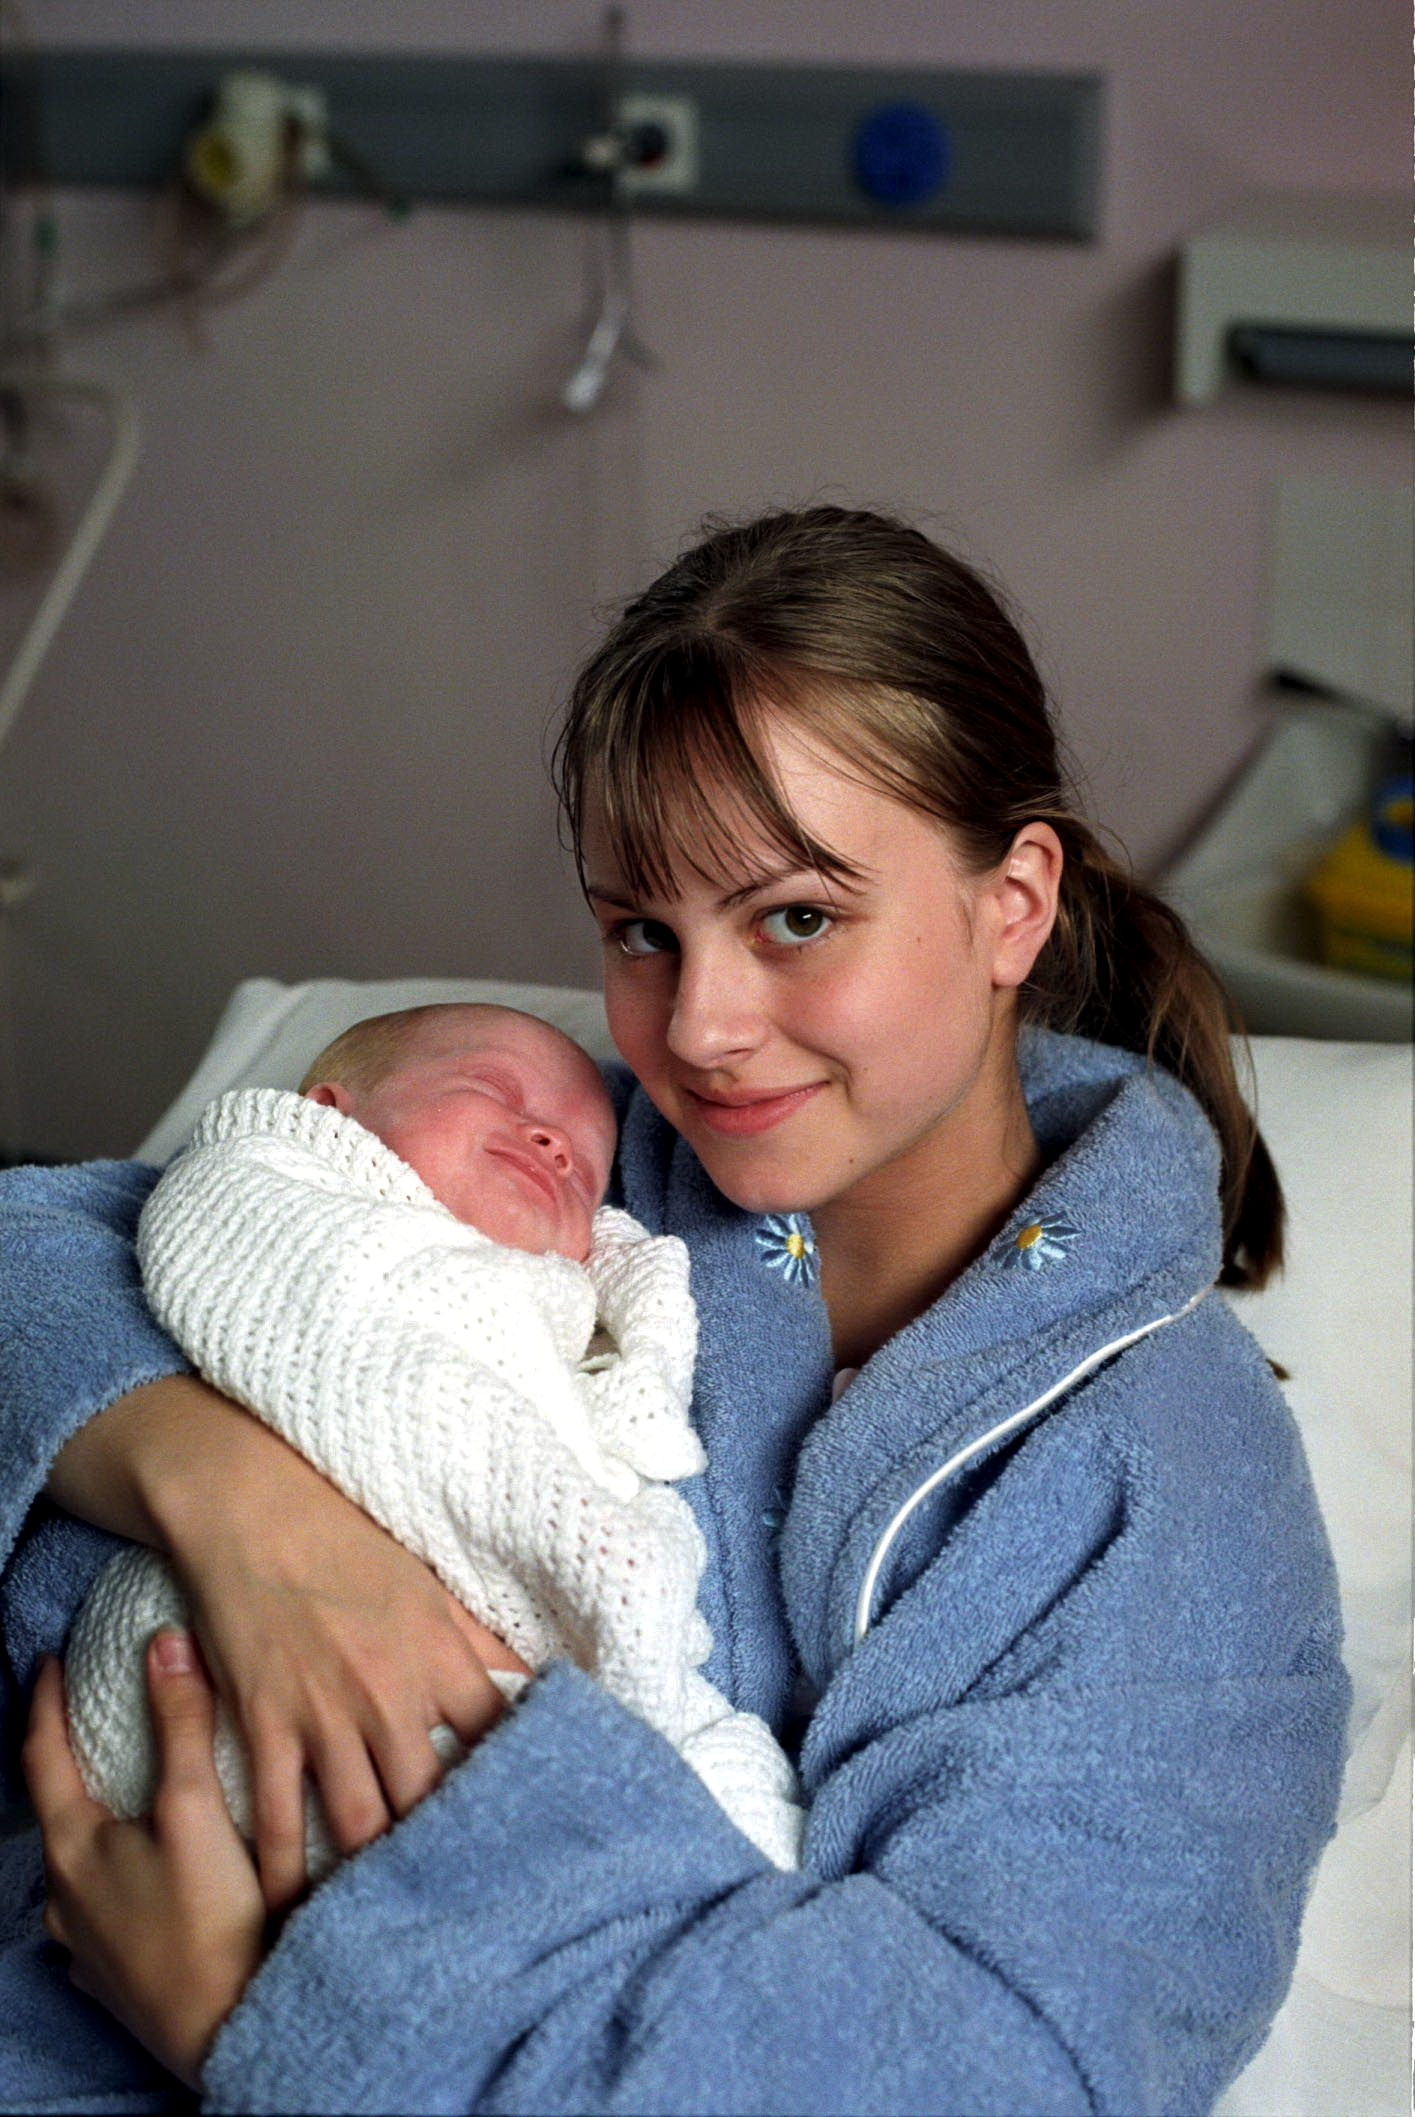 Editorial use only. Exclusive - Premium Rates Apply. Call your Account Manager for pricing. Mandatory Credit: Photo by ITV/REX/Shutterstock (673390kv) 'Coronation Street' TV - 2000 - Sarah Louise Platt (TINA O'BRIEN) and baby Bethany Platt [Amy & Emily Walton]. ITV ARCHIVE -